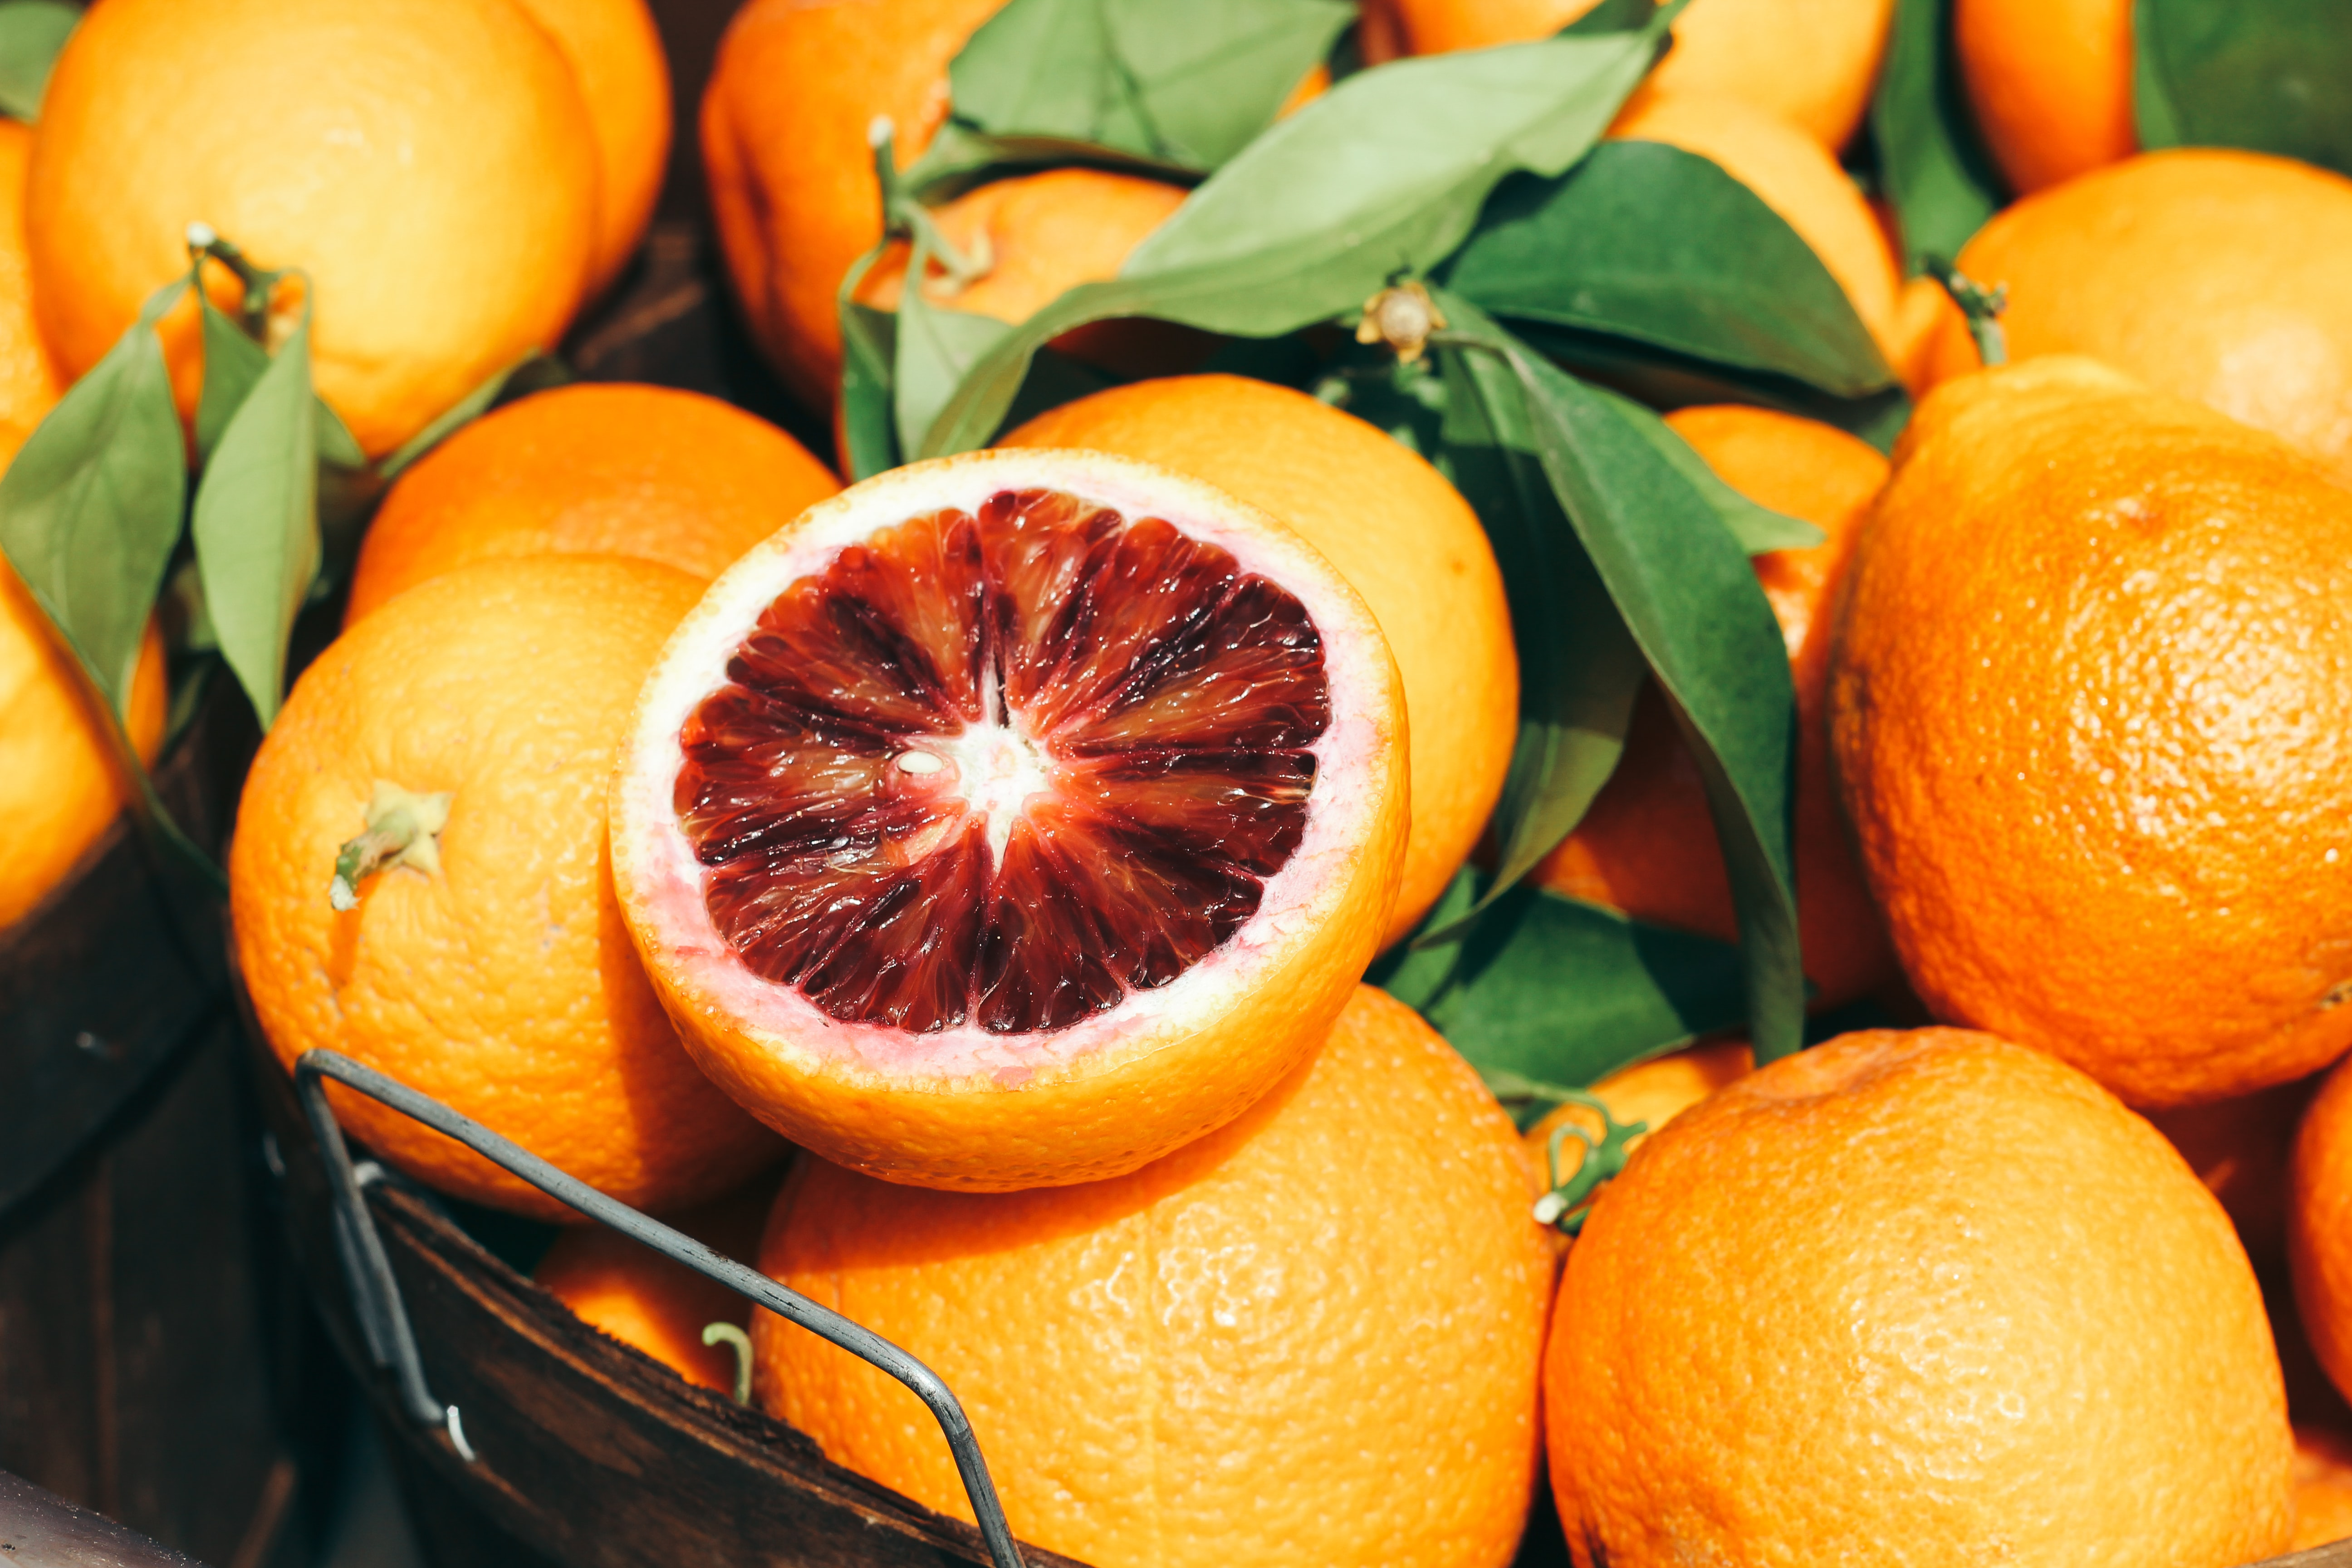 Basket of blood oranges and leaves with one cut in half